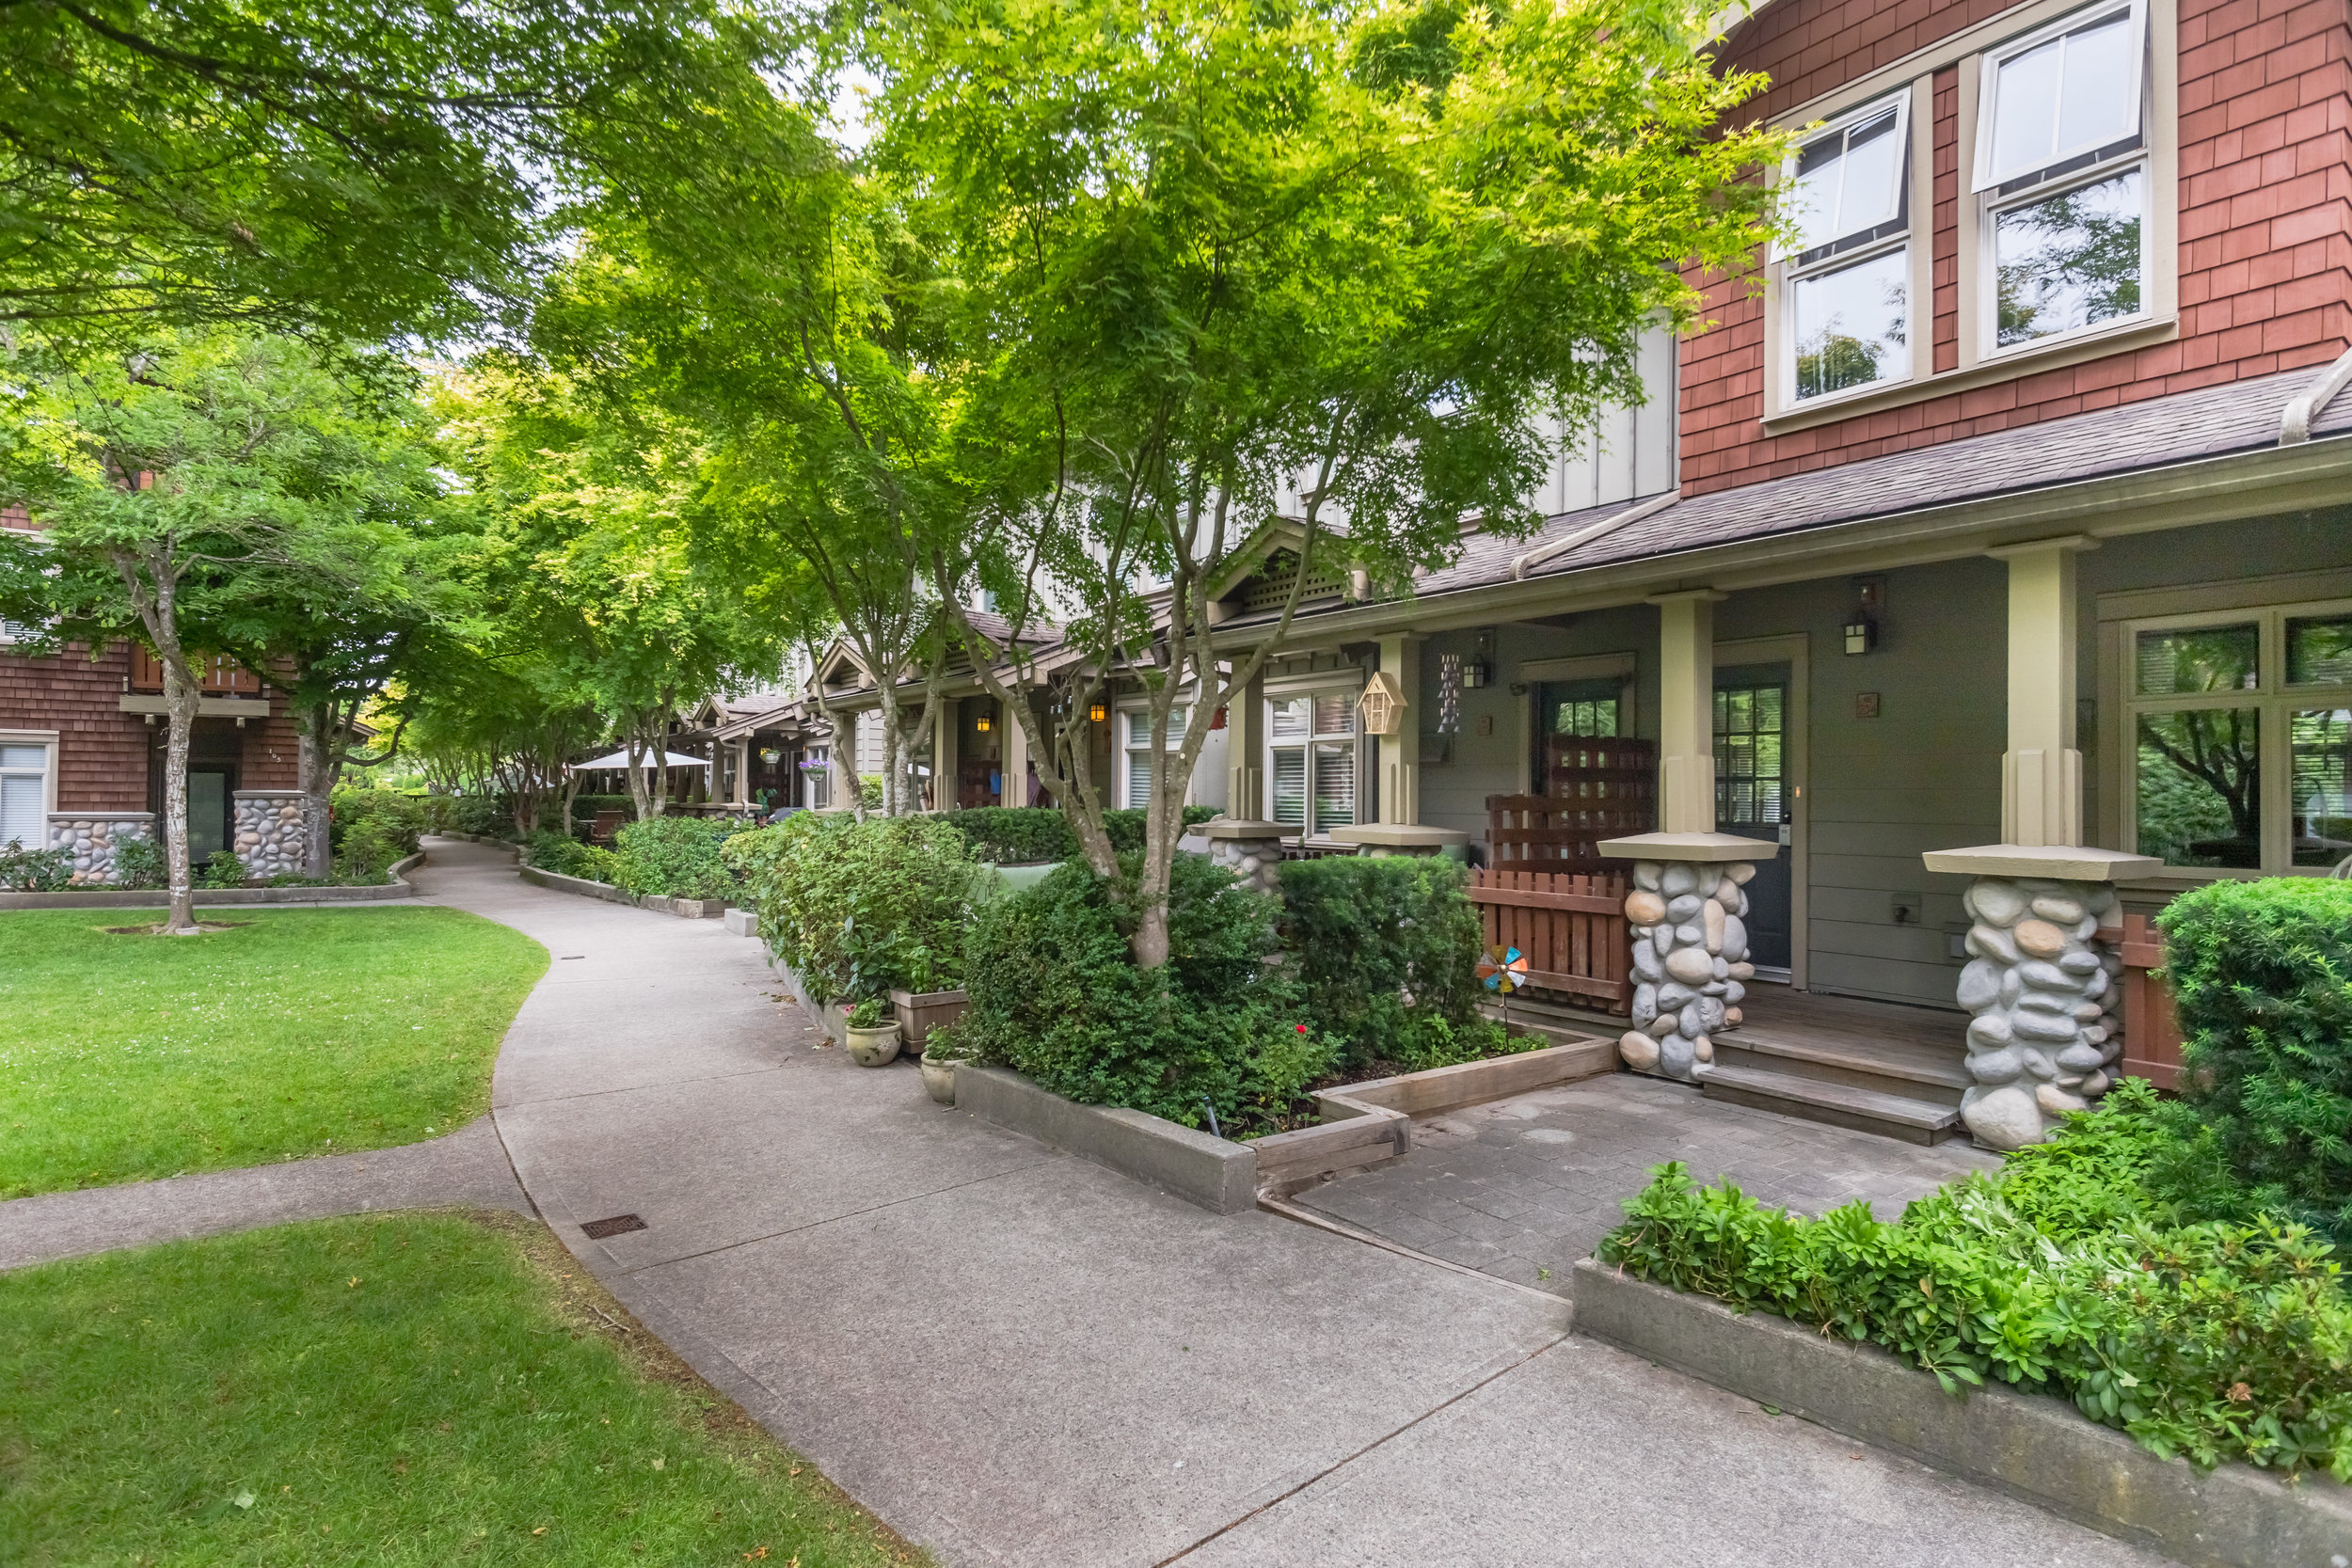 Crofton Queen's Park - #234-15 Sixth Avenue(JUST SOLD)$545,000| 2 Bed | 1 Bath | Townhouse